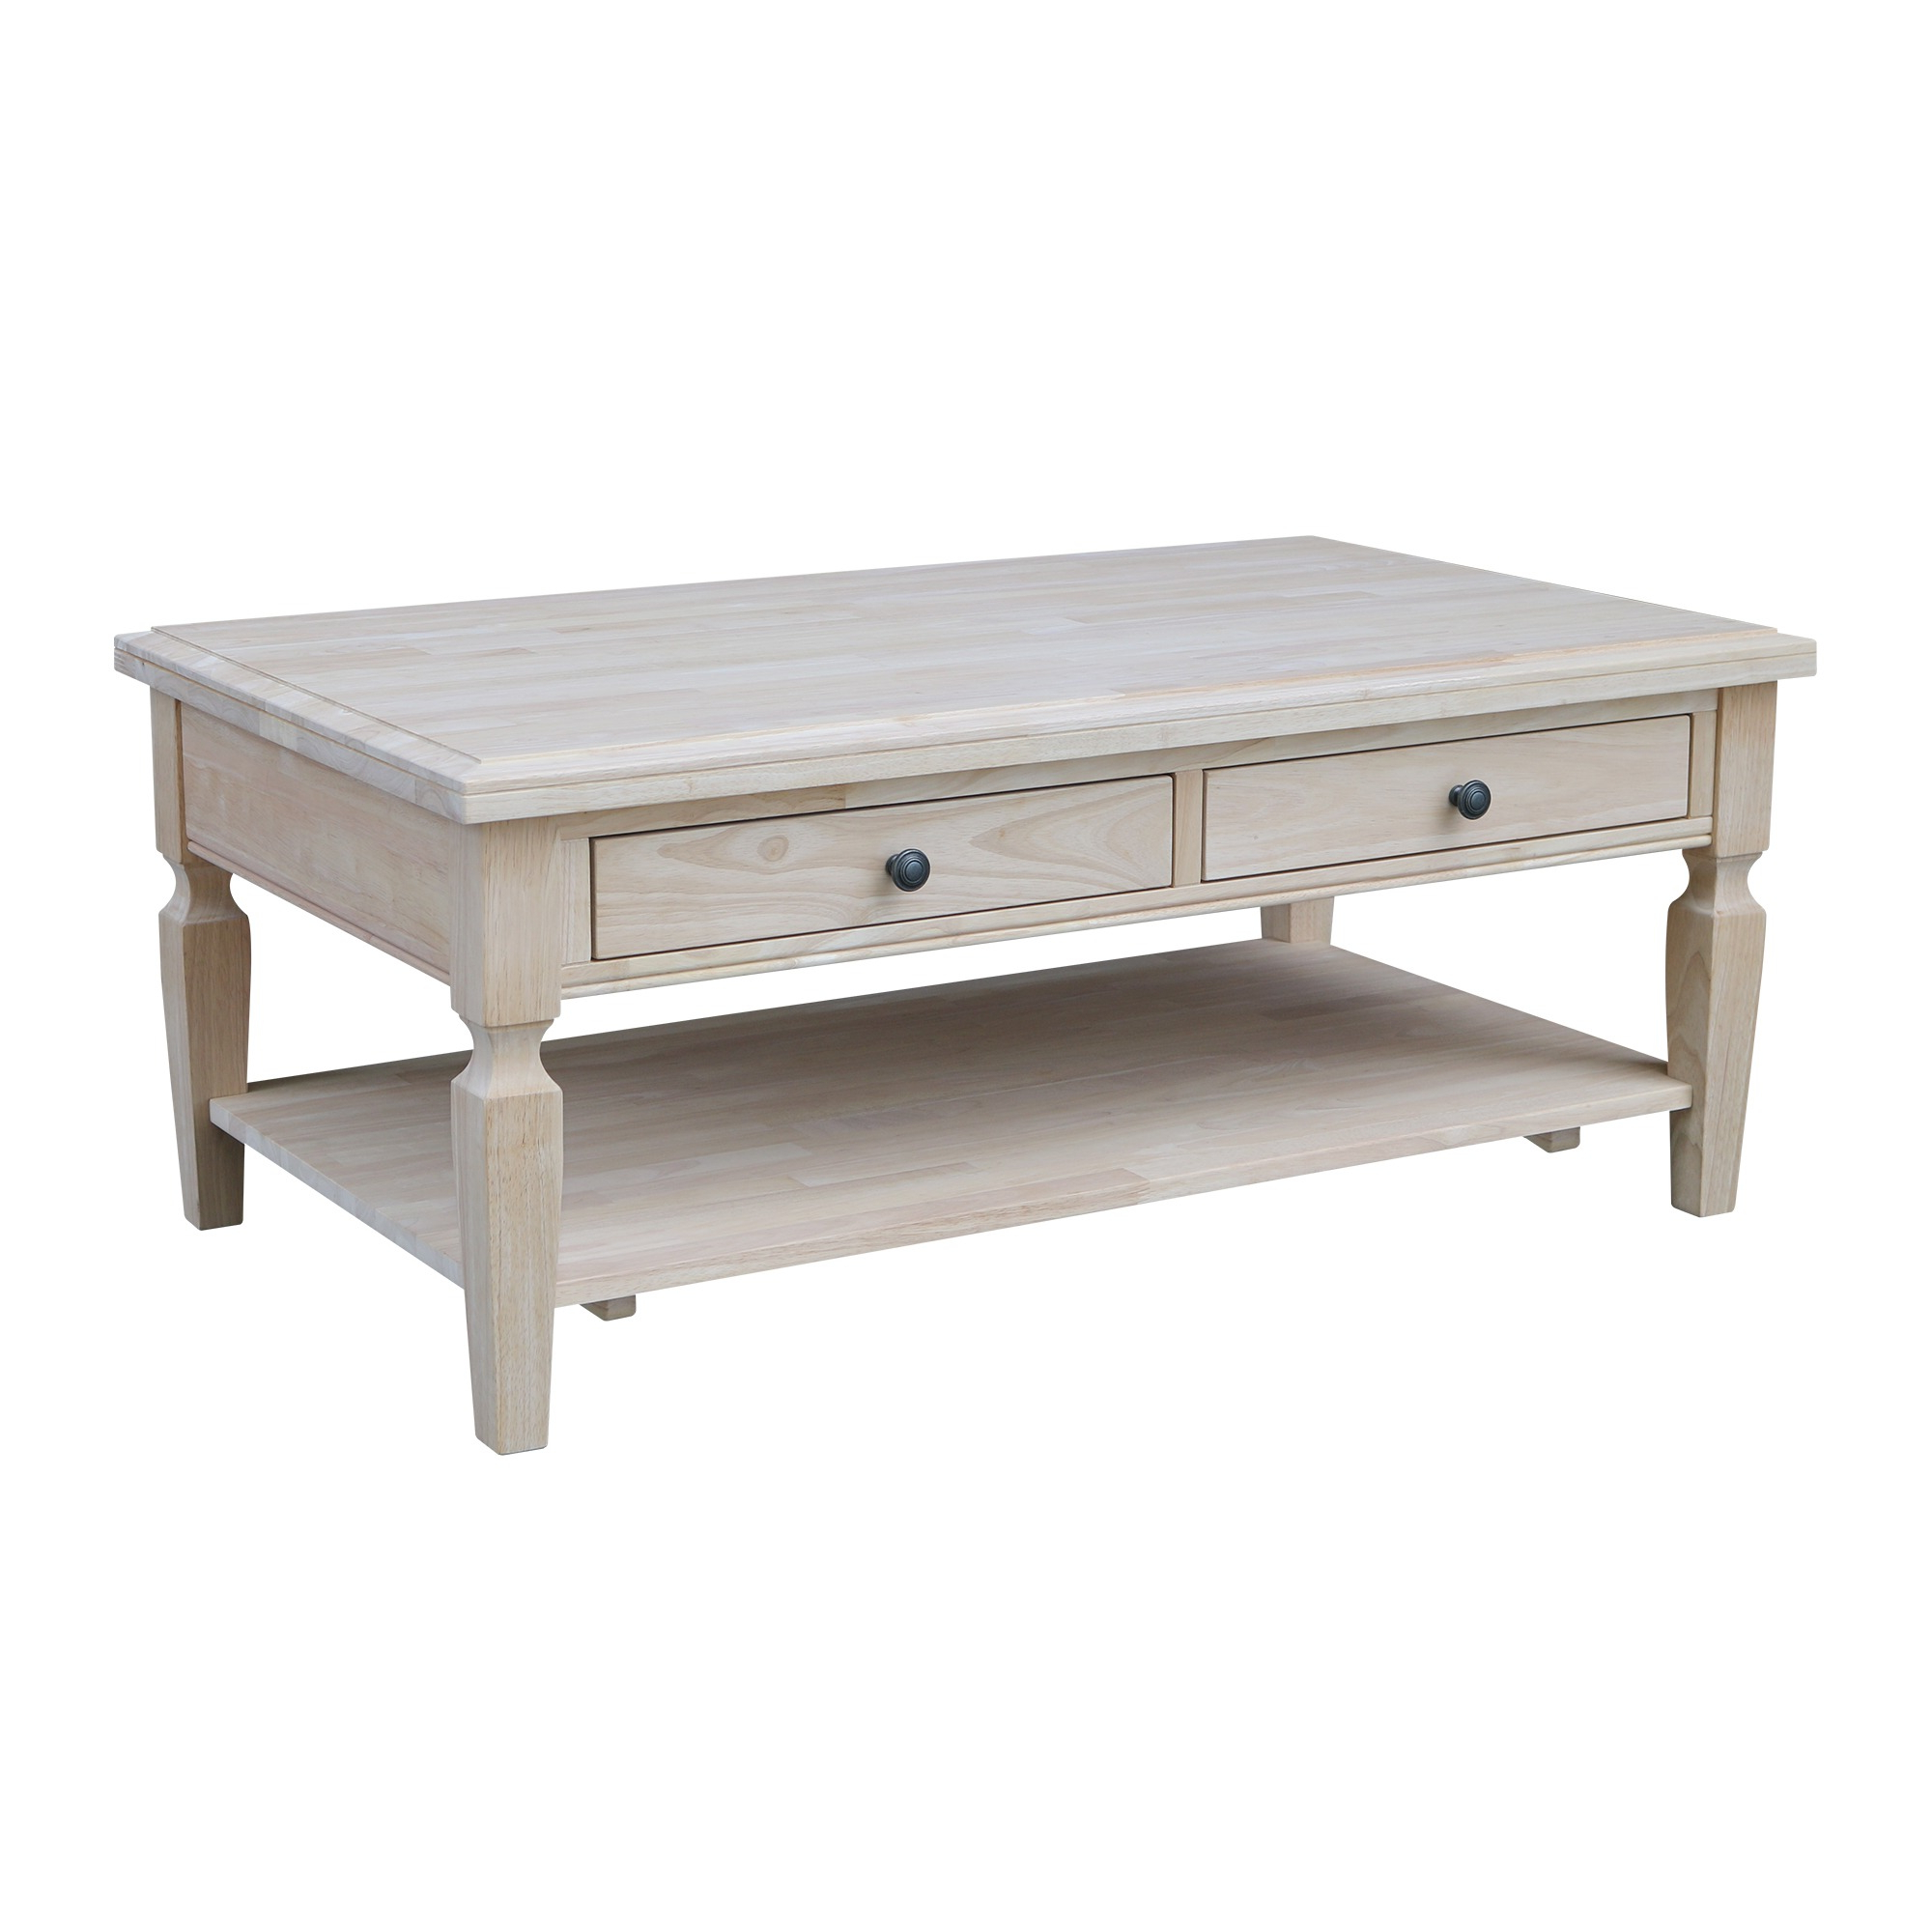 Ot 15c Vista Coffee Table W/ Free Shipping Within Fashionable Unfinished Solid Parawood Square Coffee Tables (View 14 of 20)